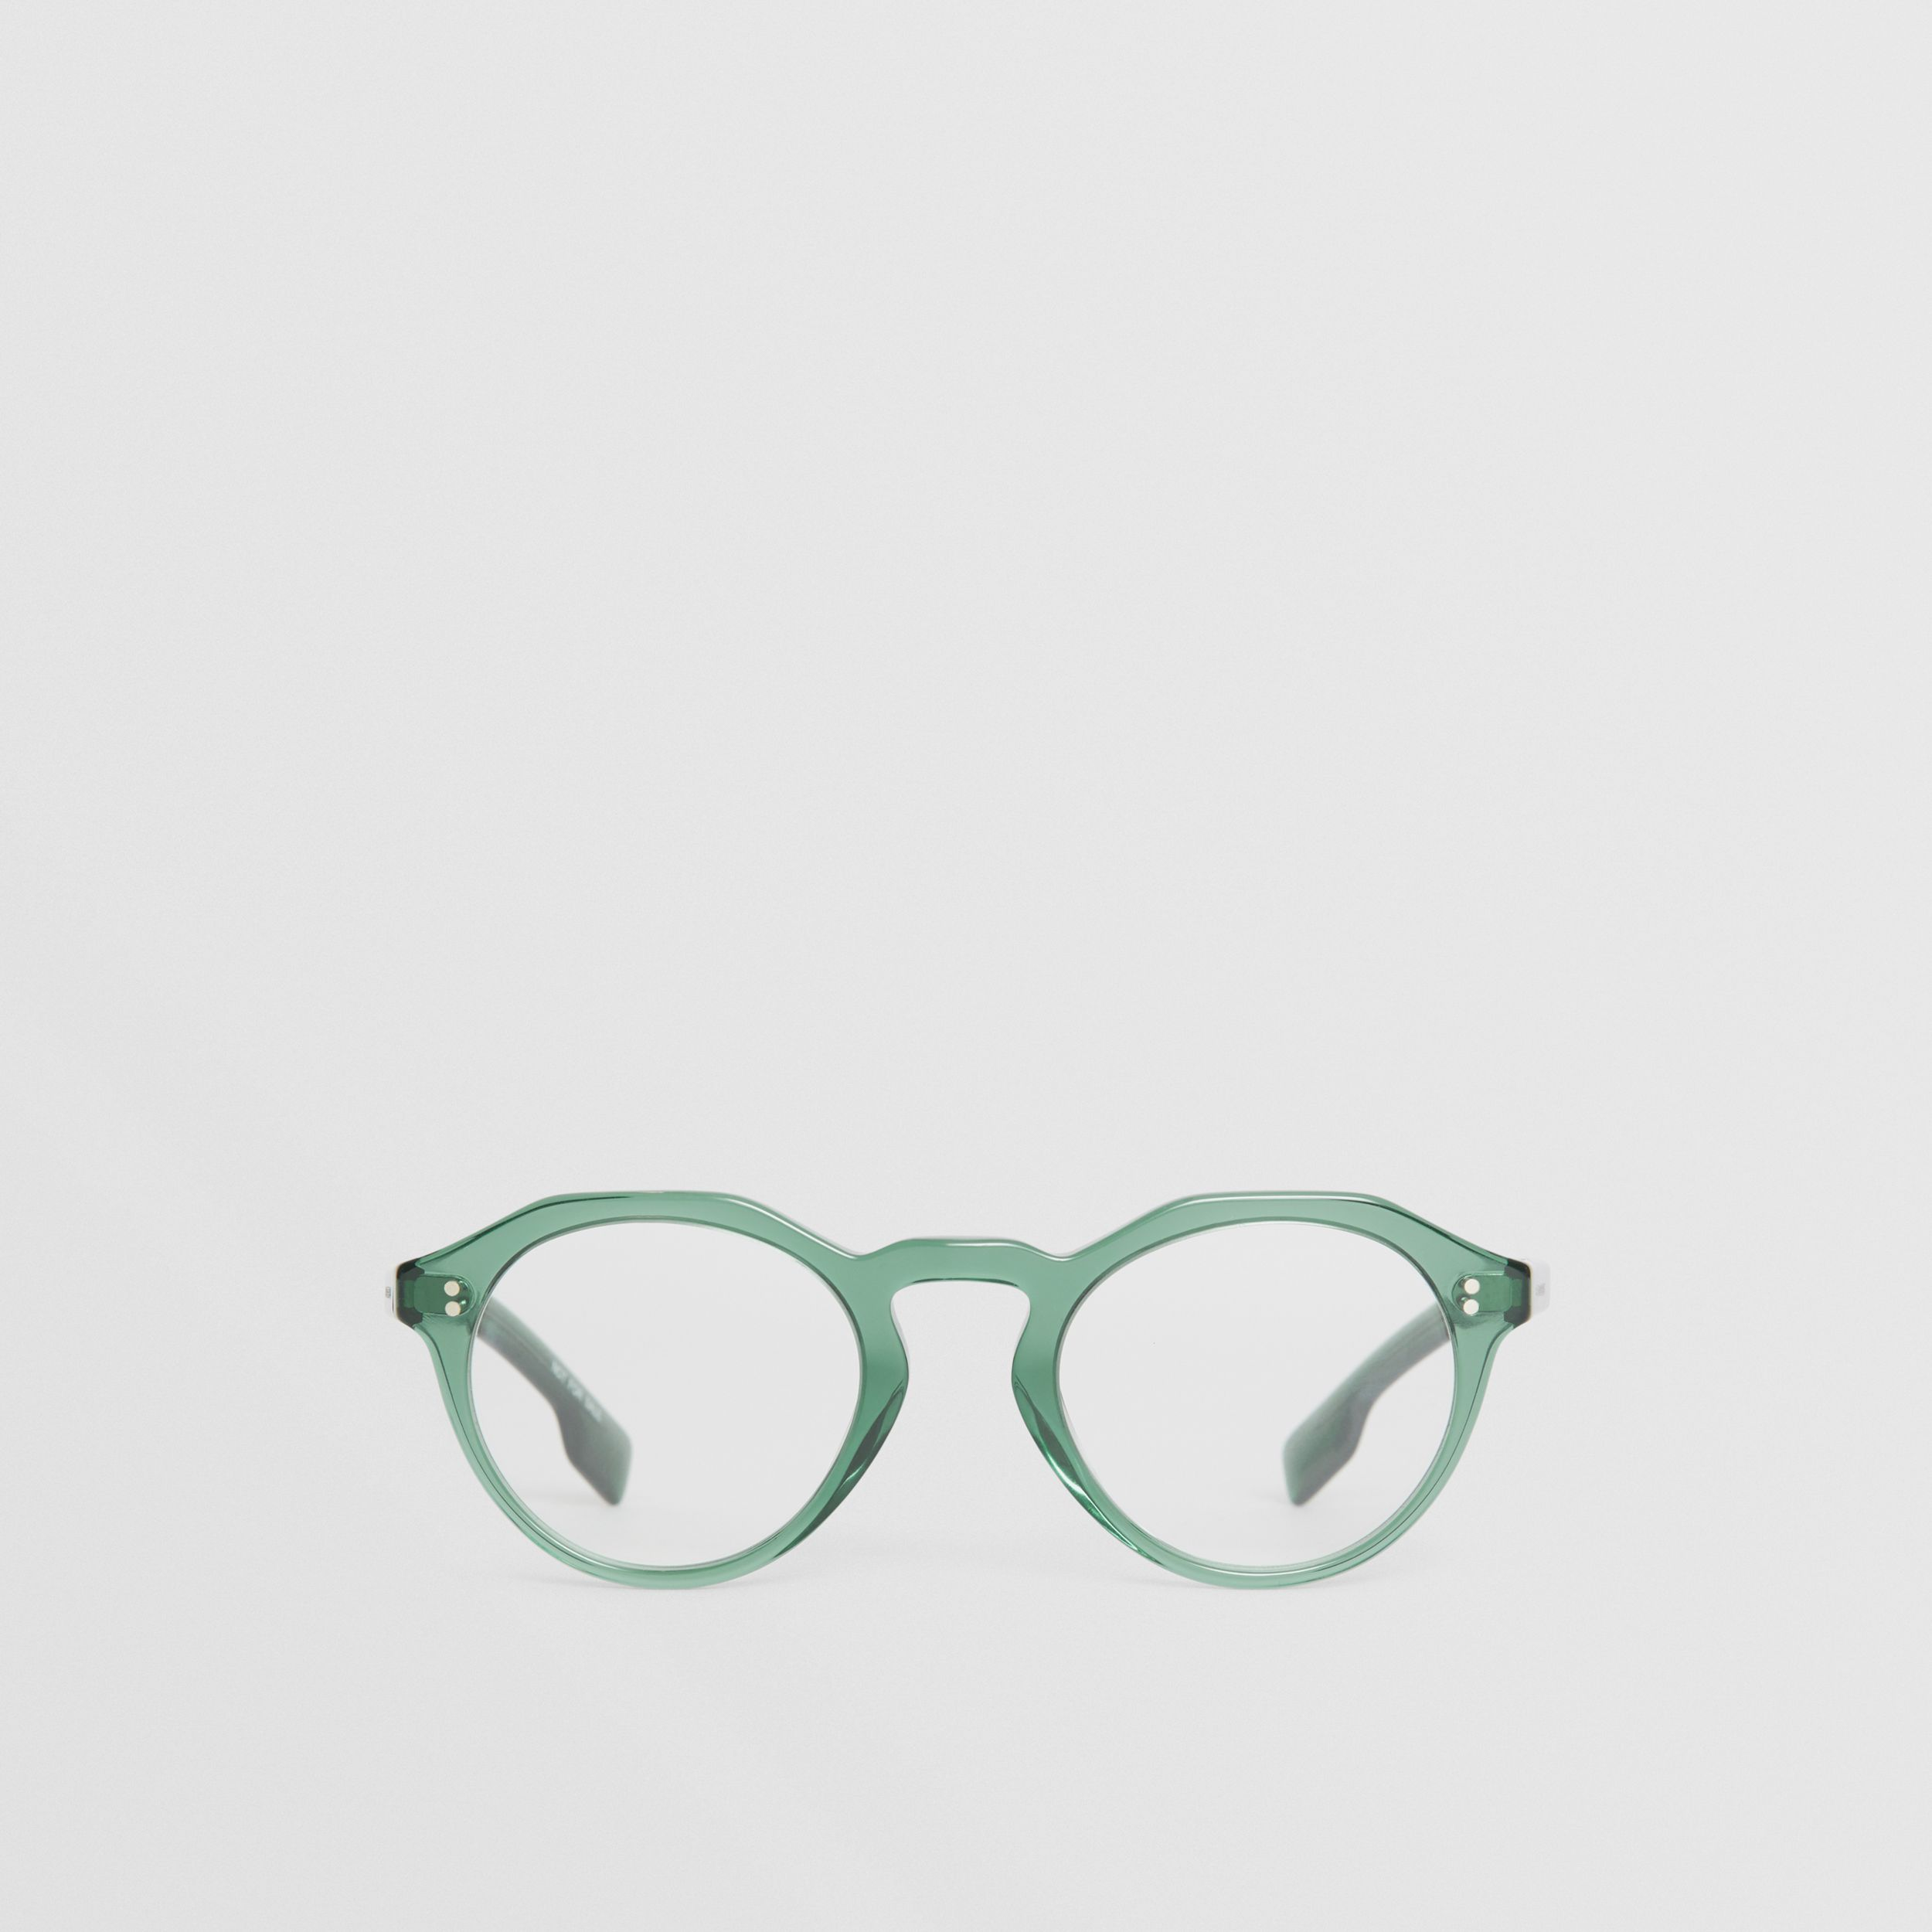 Keyhole Round Optical Frames in Green - Men | Burberry - 1